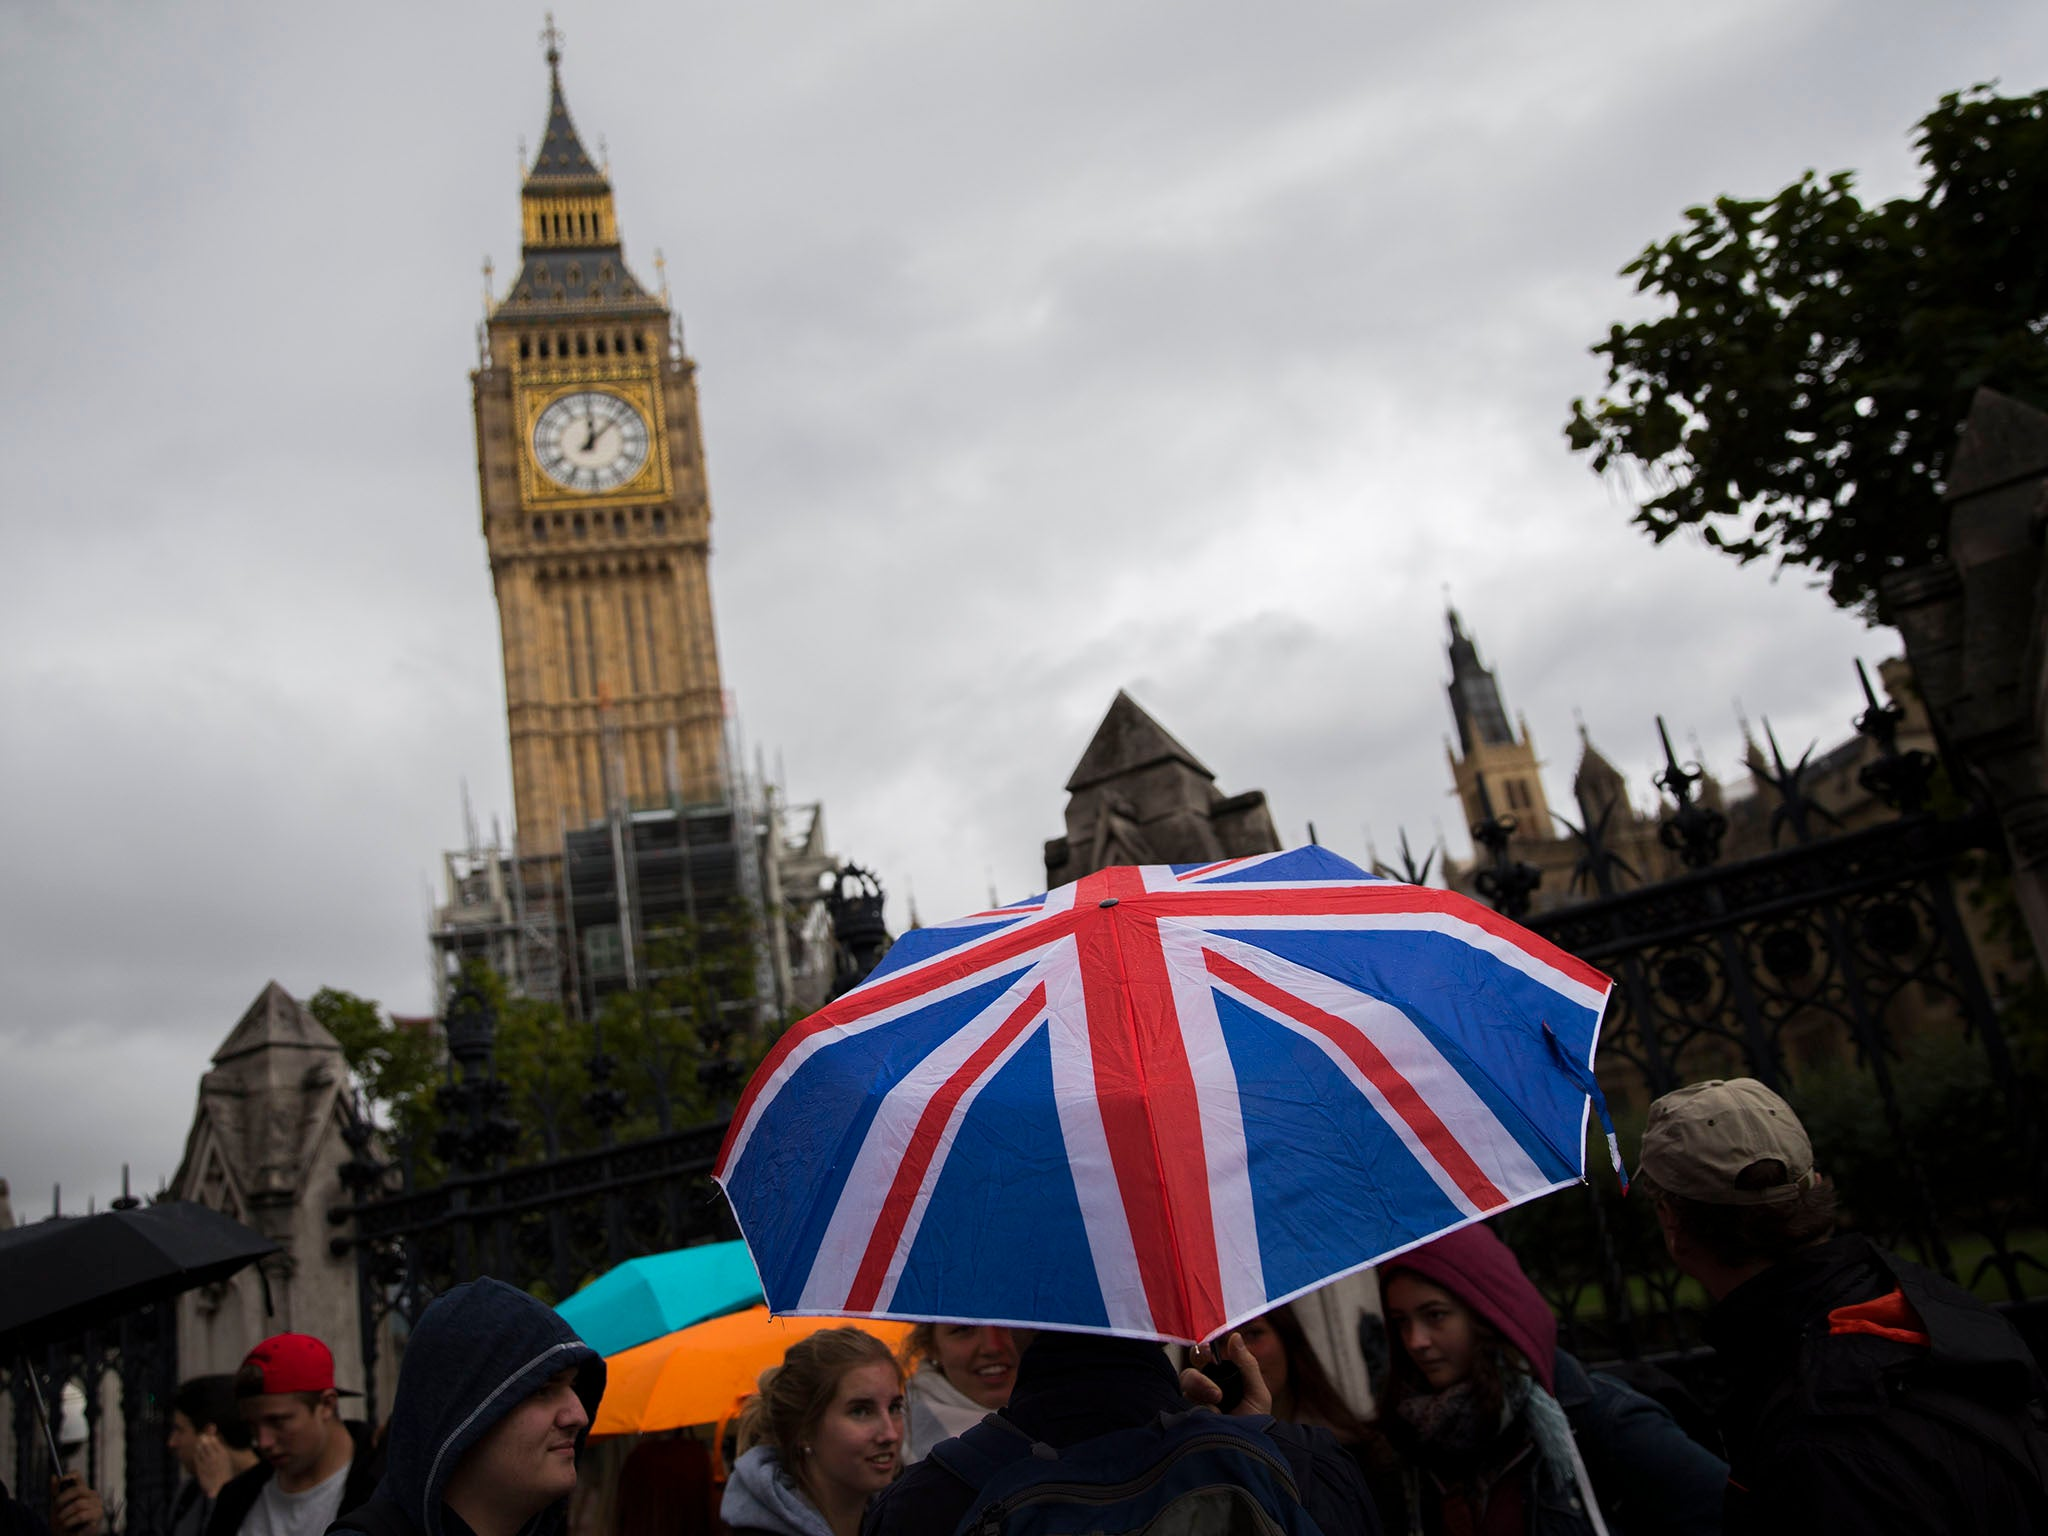 The success of the Brexit negotiations show that we're finally getting our country back